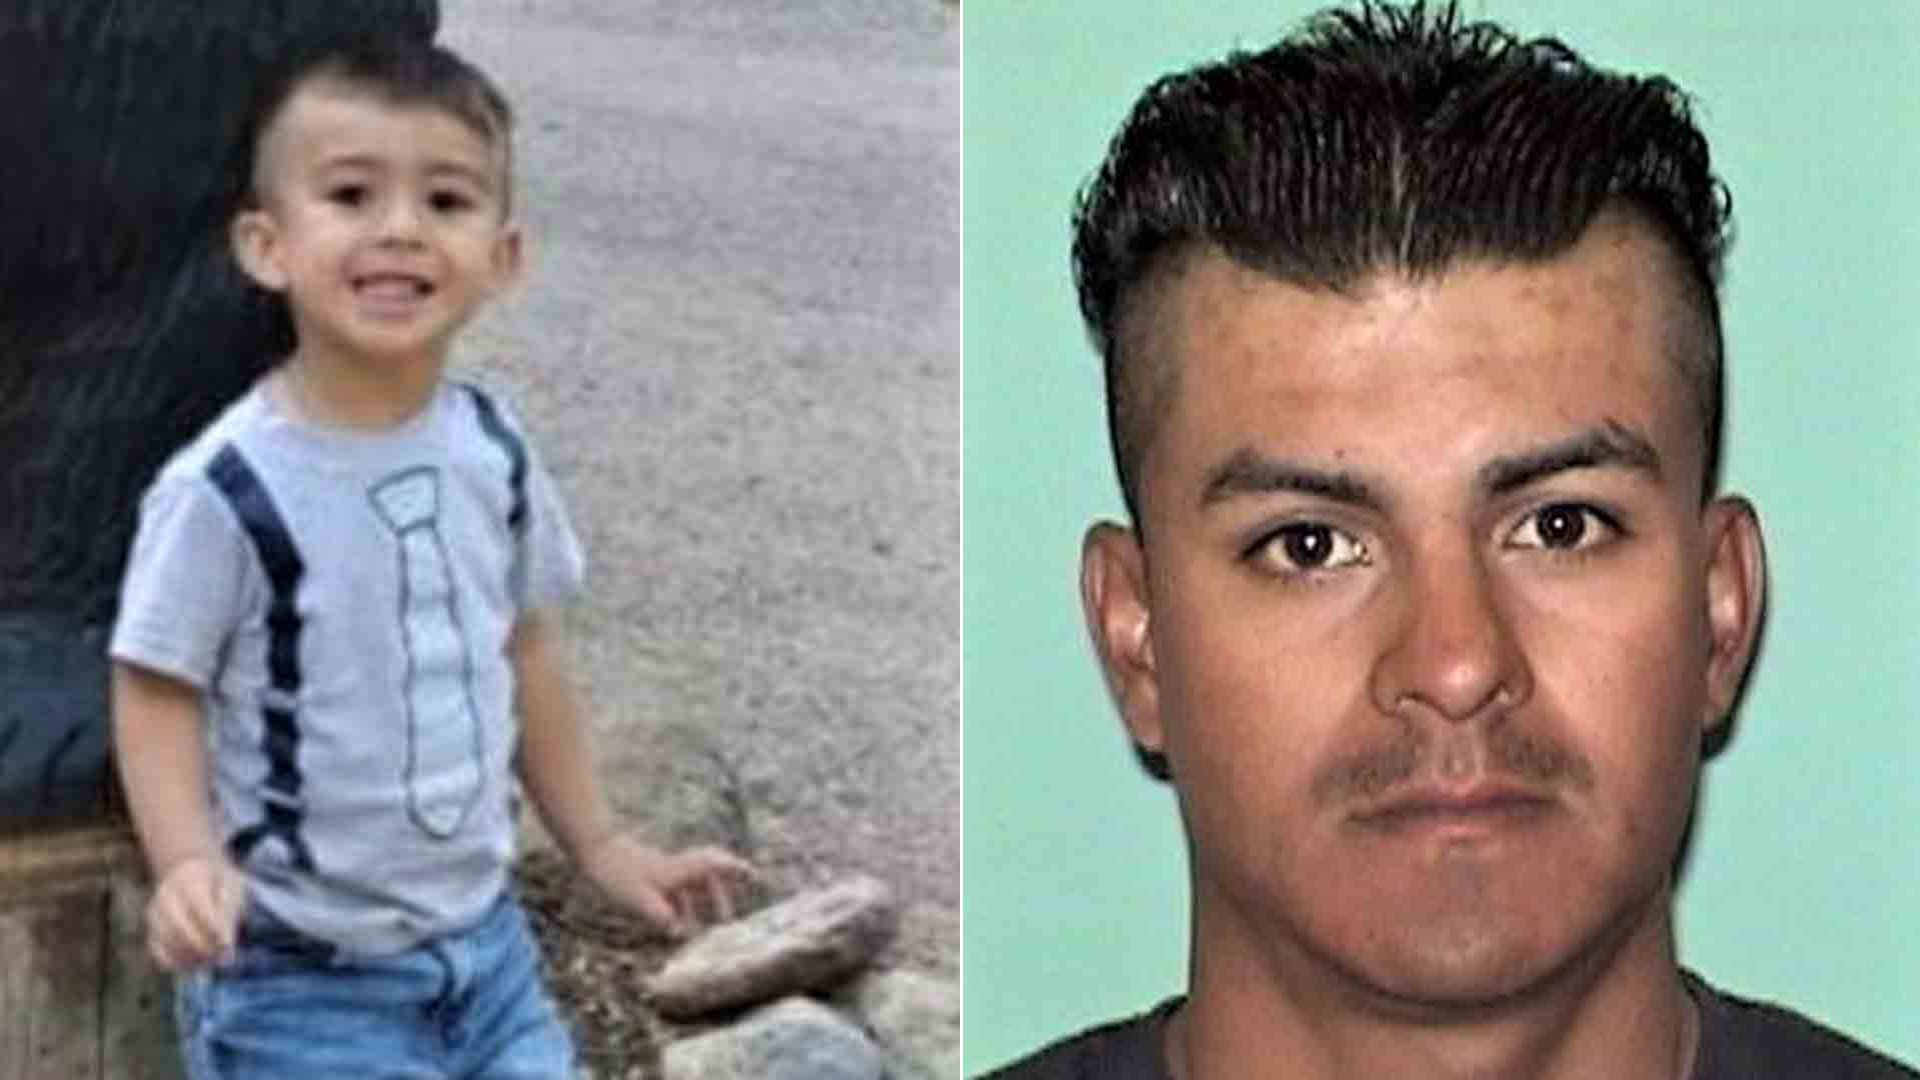 Osiel Ernesto Rico, left, and Jorge Rico-Ruvira, right, are seen in photos released by police in Roswell, New Mexico, on Jan. 7, 2020.